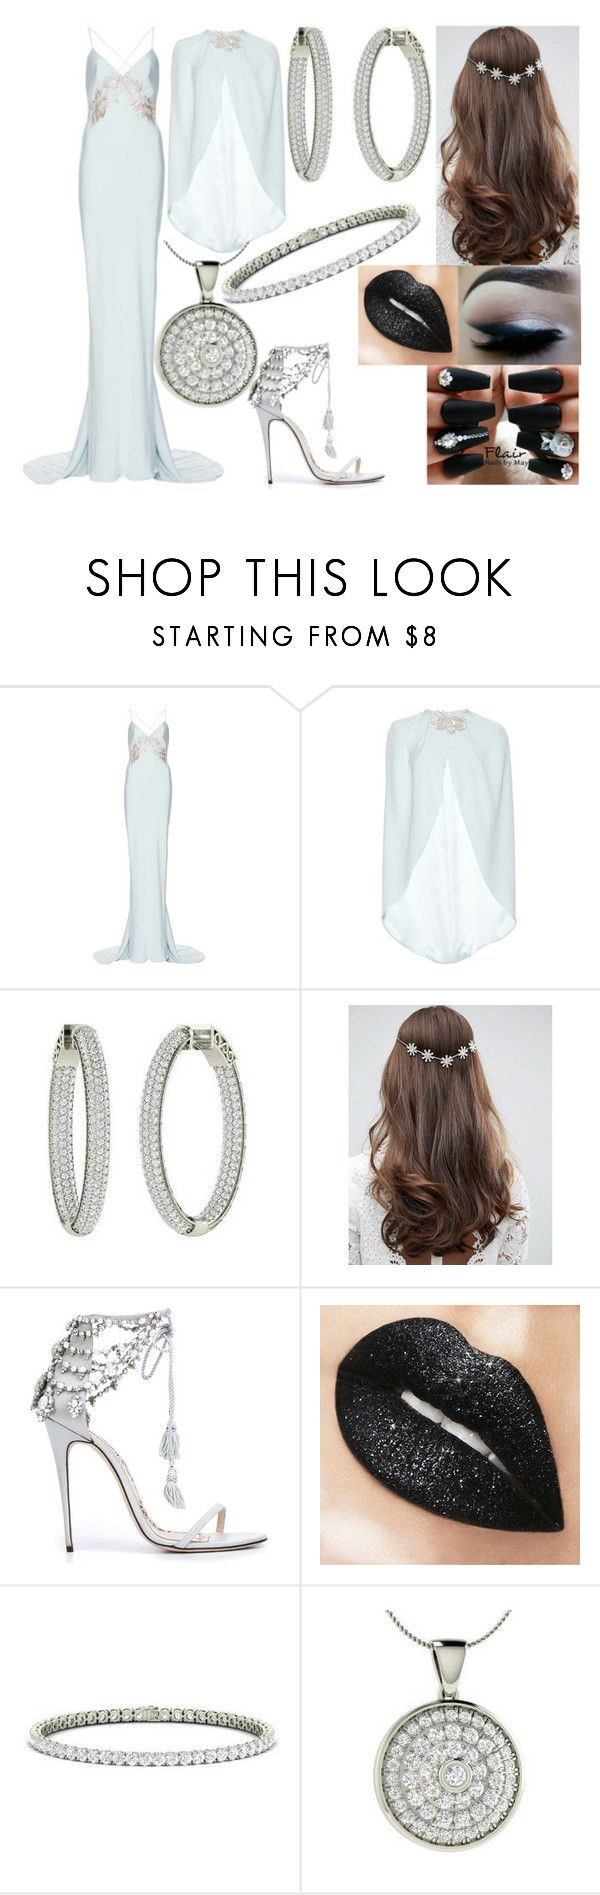 """Untitled #41"" by honeythismirrorisntbigenough on Polyvore featuring Elizabeth Fillmore, ASOS and Marchesa"